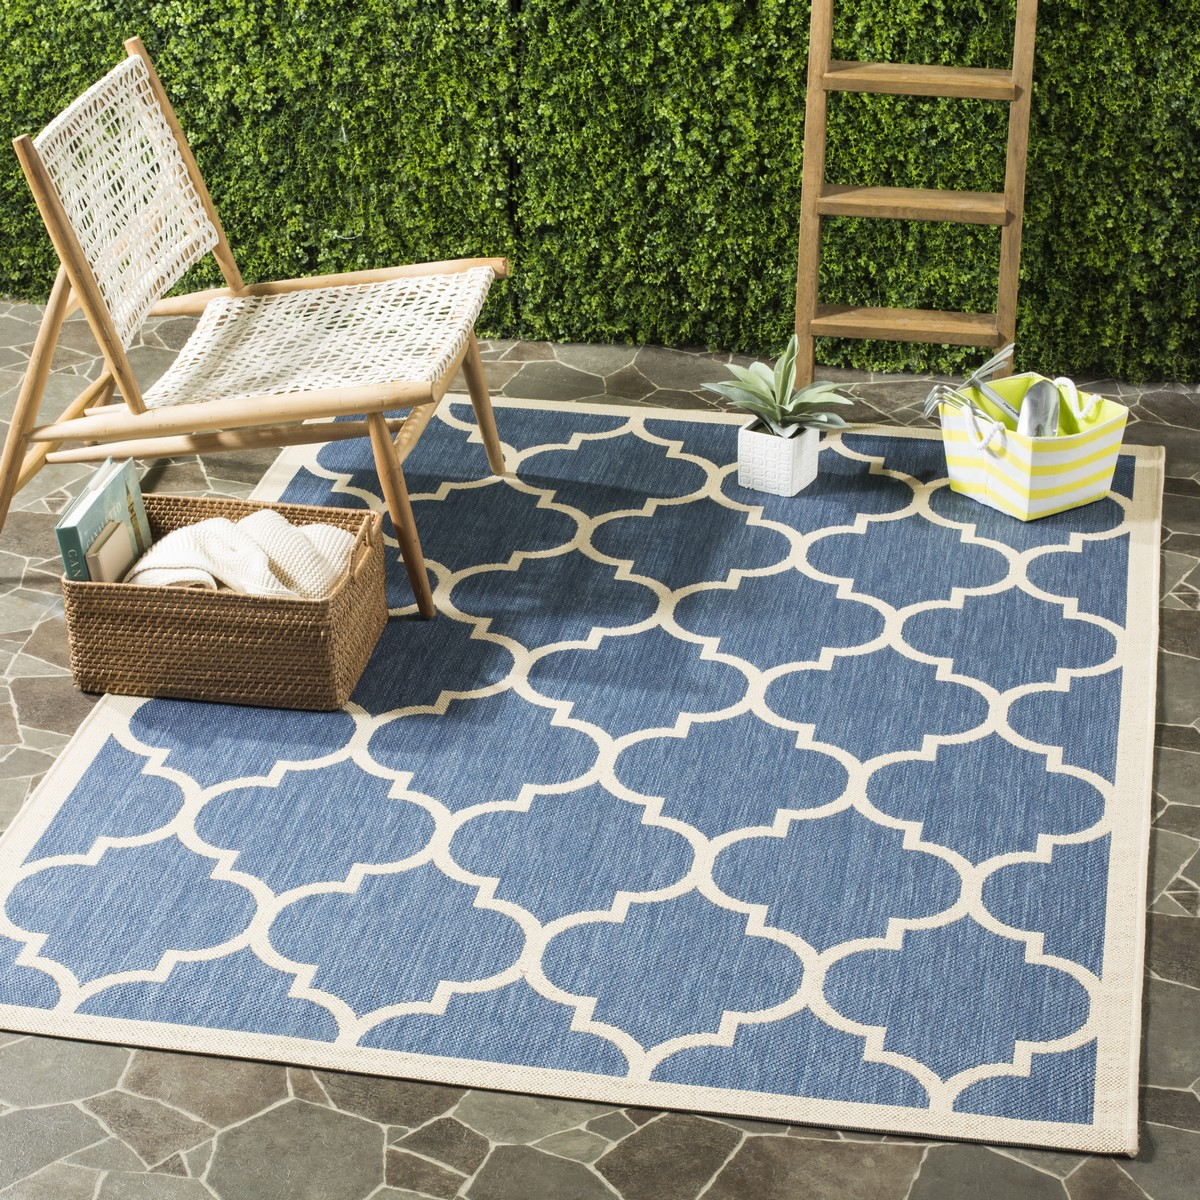 Blue Tile Indoor-Outdoor Rug